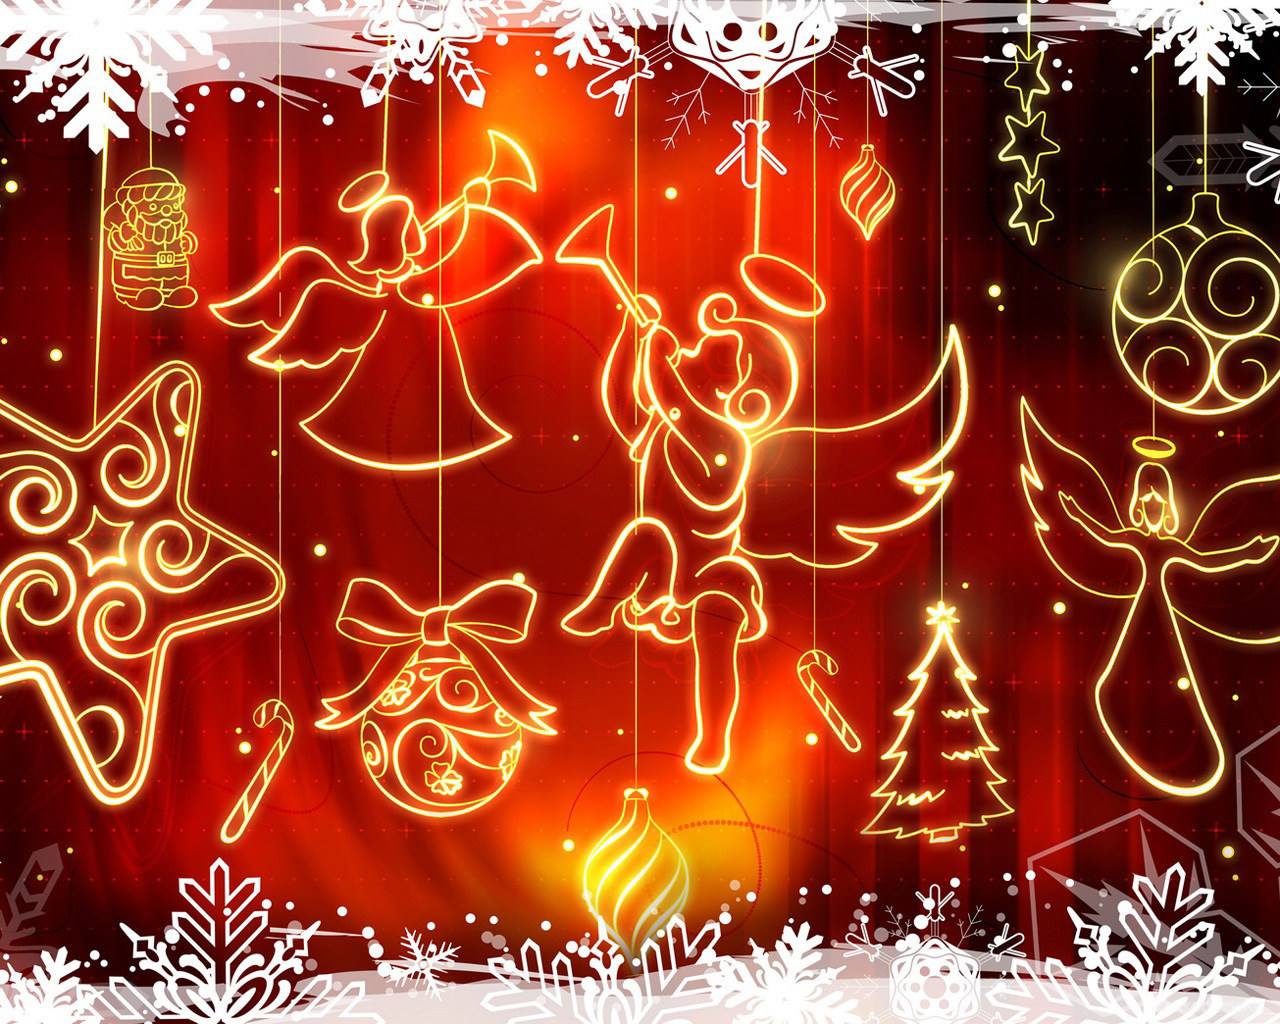 32326 download wallpaper Holidays, Background, Christmas, Xmas screensavers and pictures for free